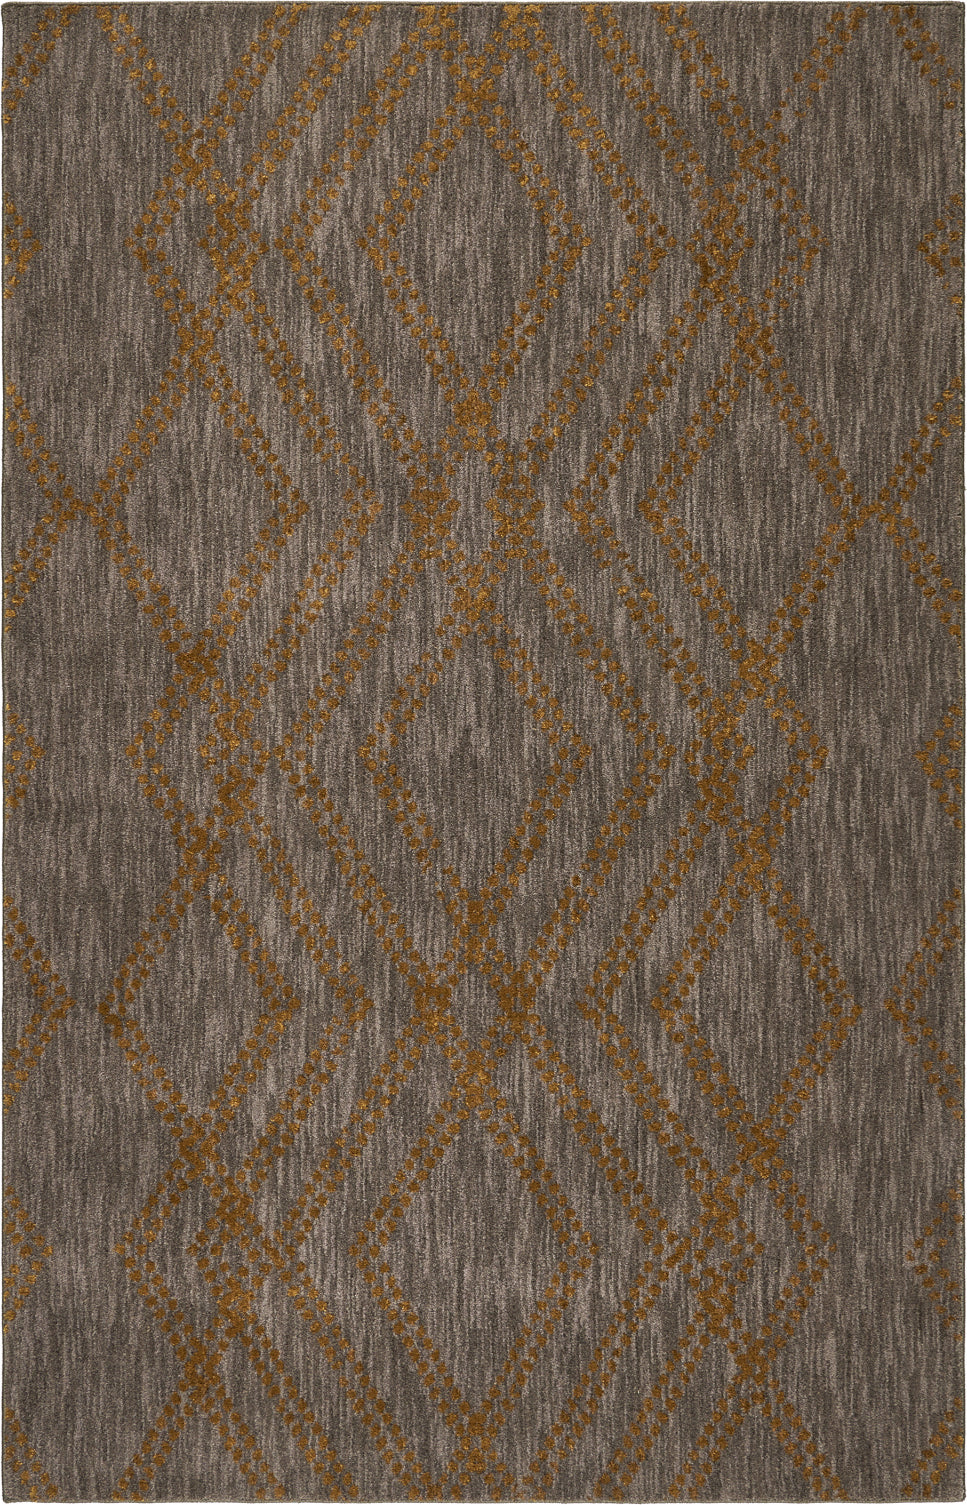 Karastan Cosmopolitan French Affair Smokey Gray Area Rug by Patina Vie main image